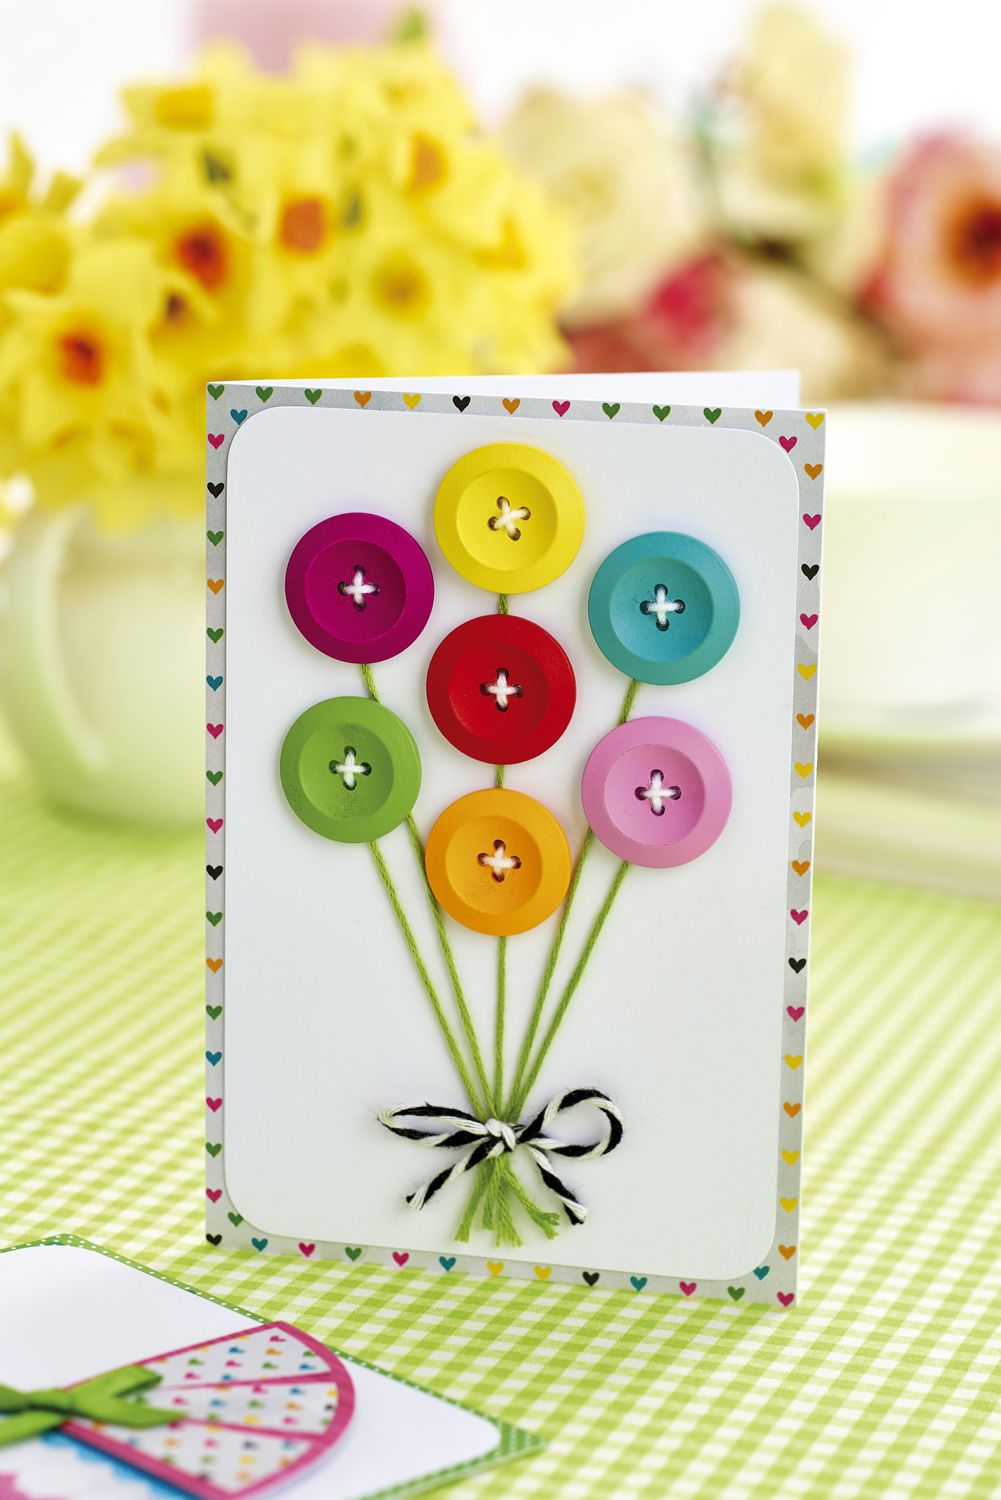 Make cards featuring buttons in our April issue, out now! Pic